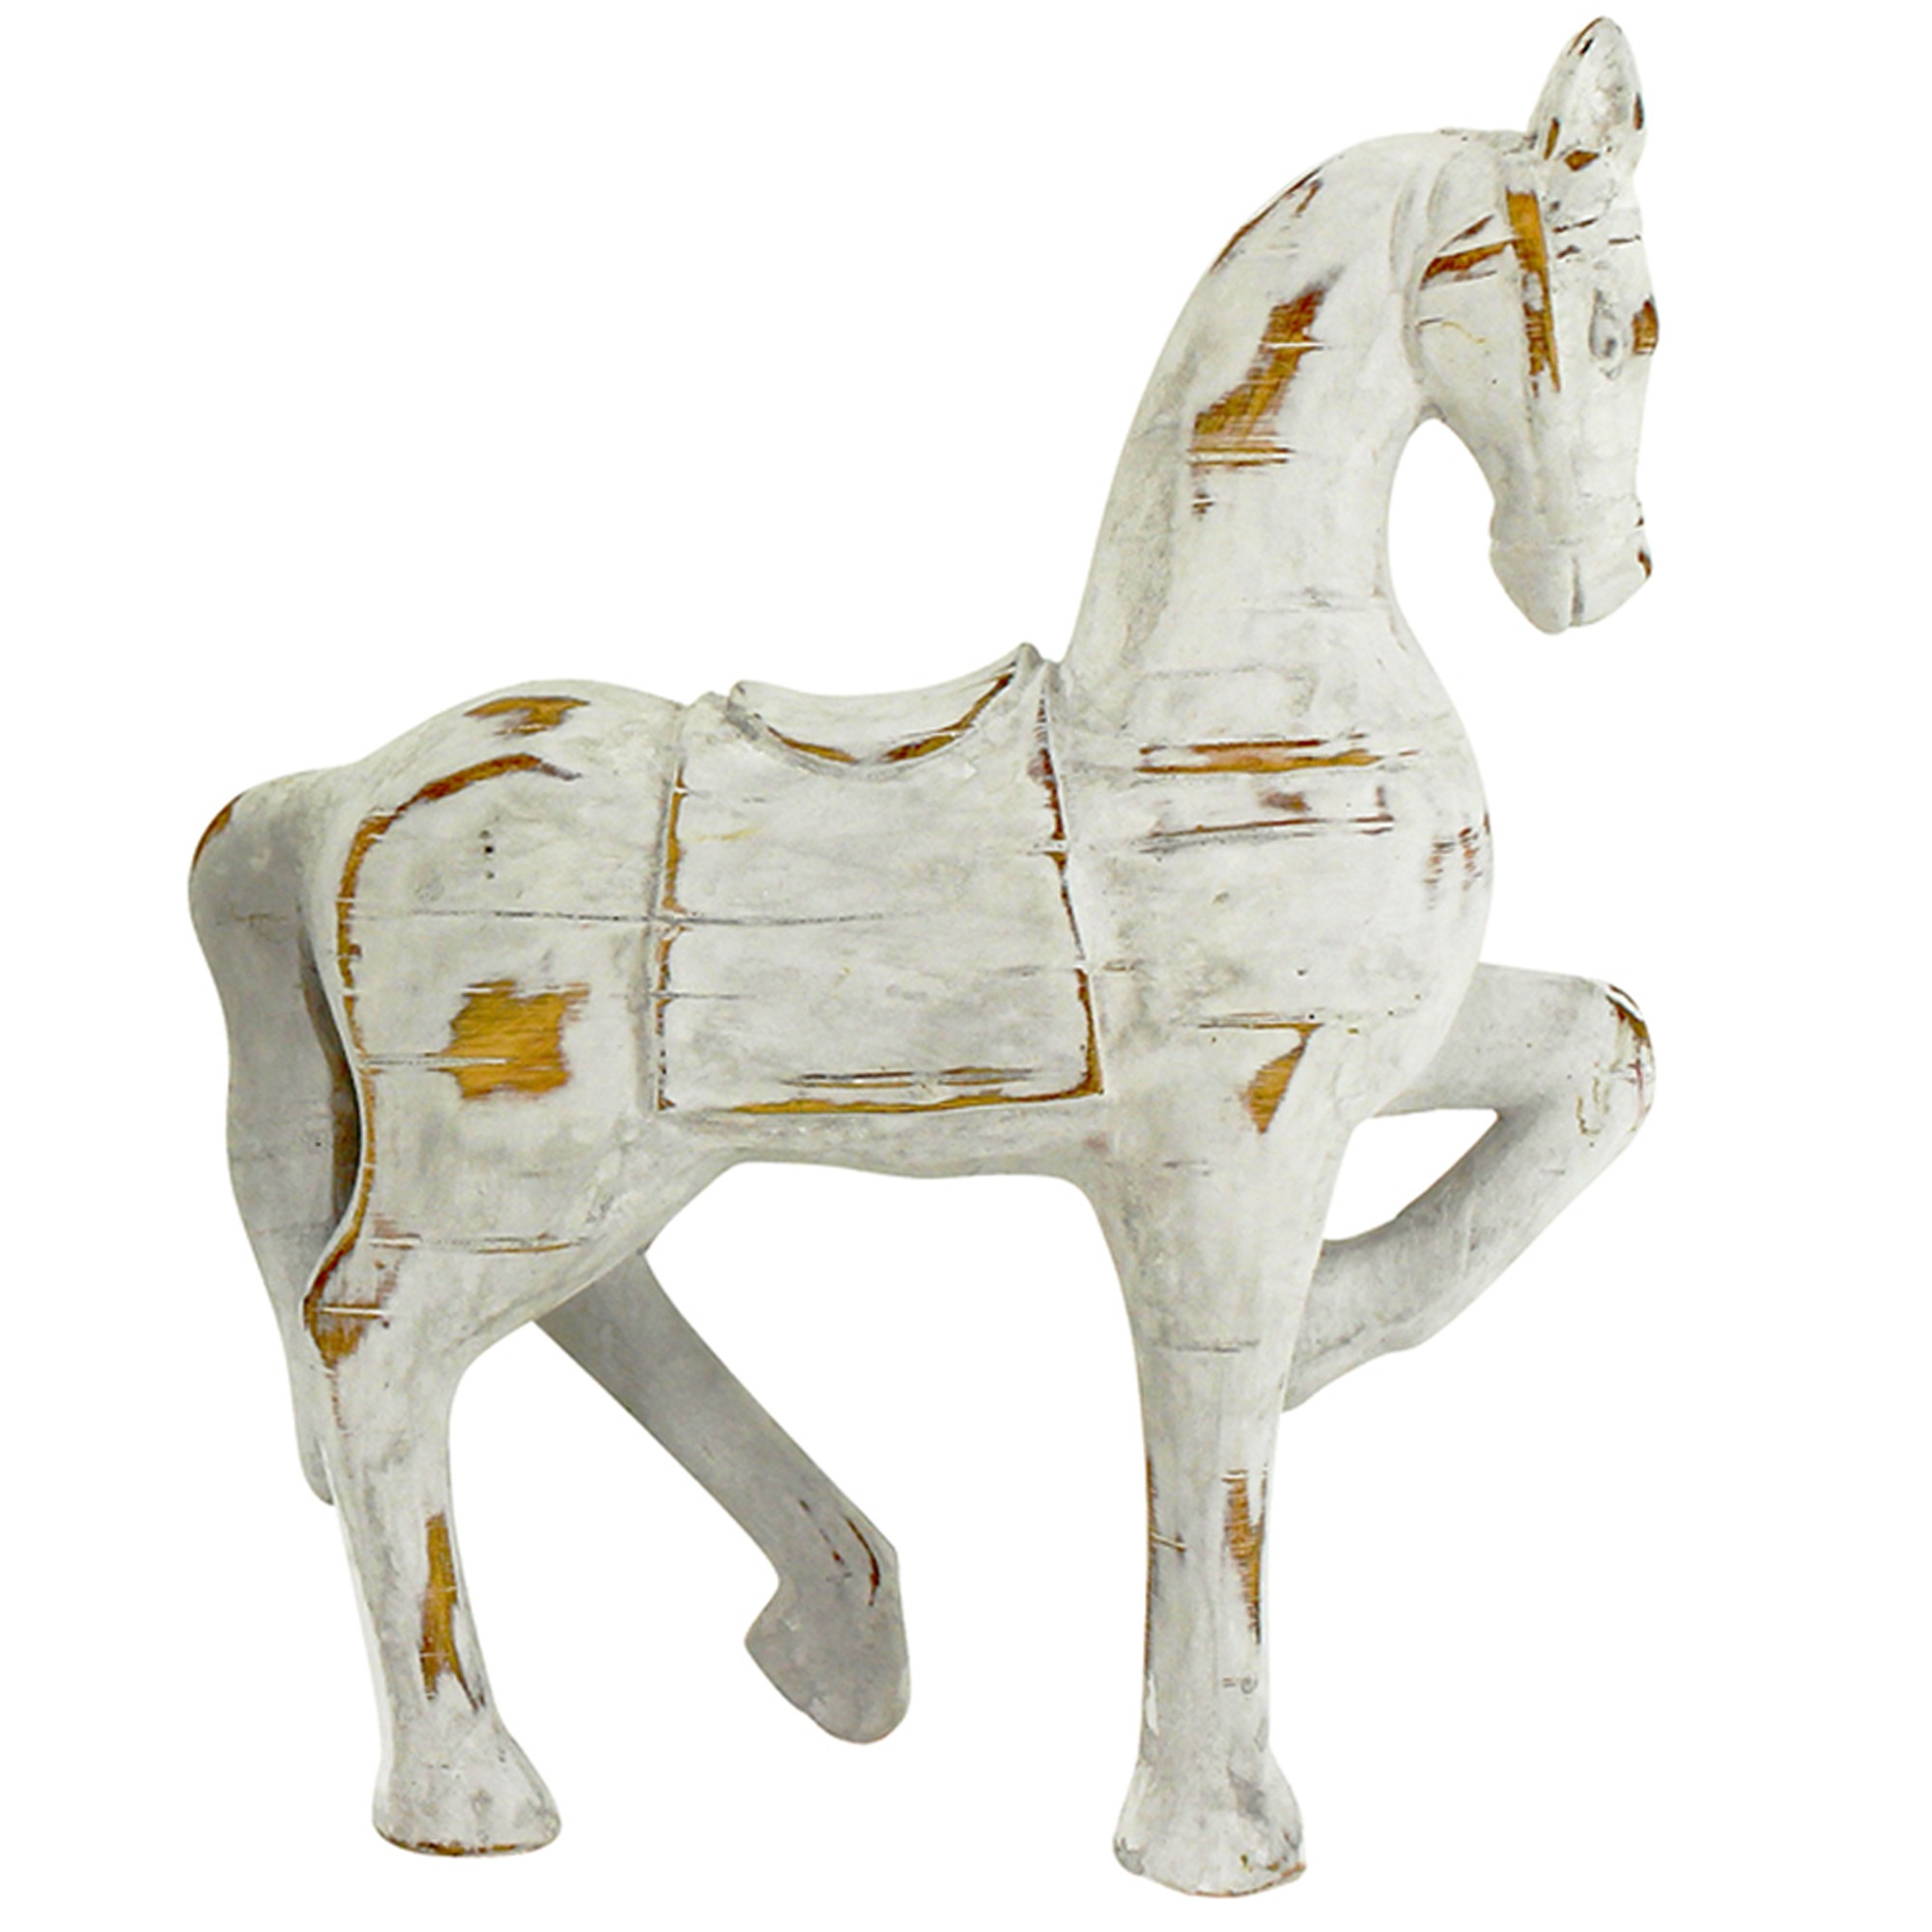 Mustafa Ceramic Horse Sculpture, Small